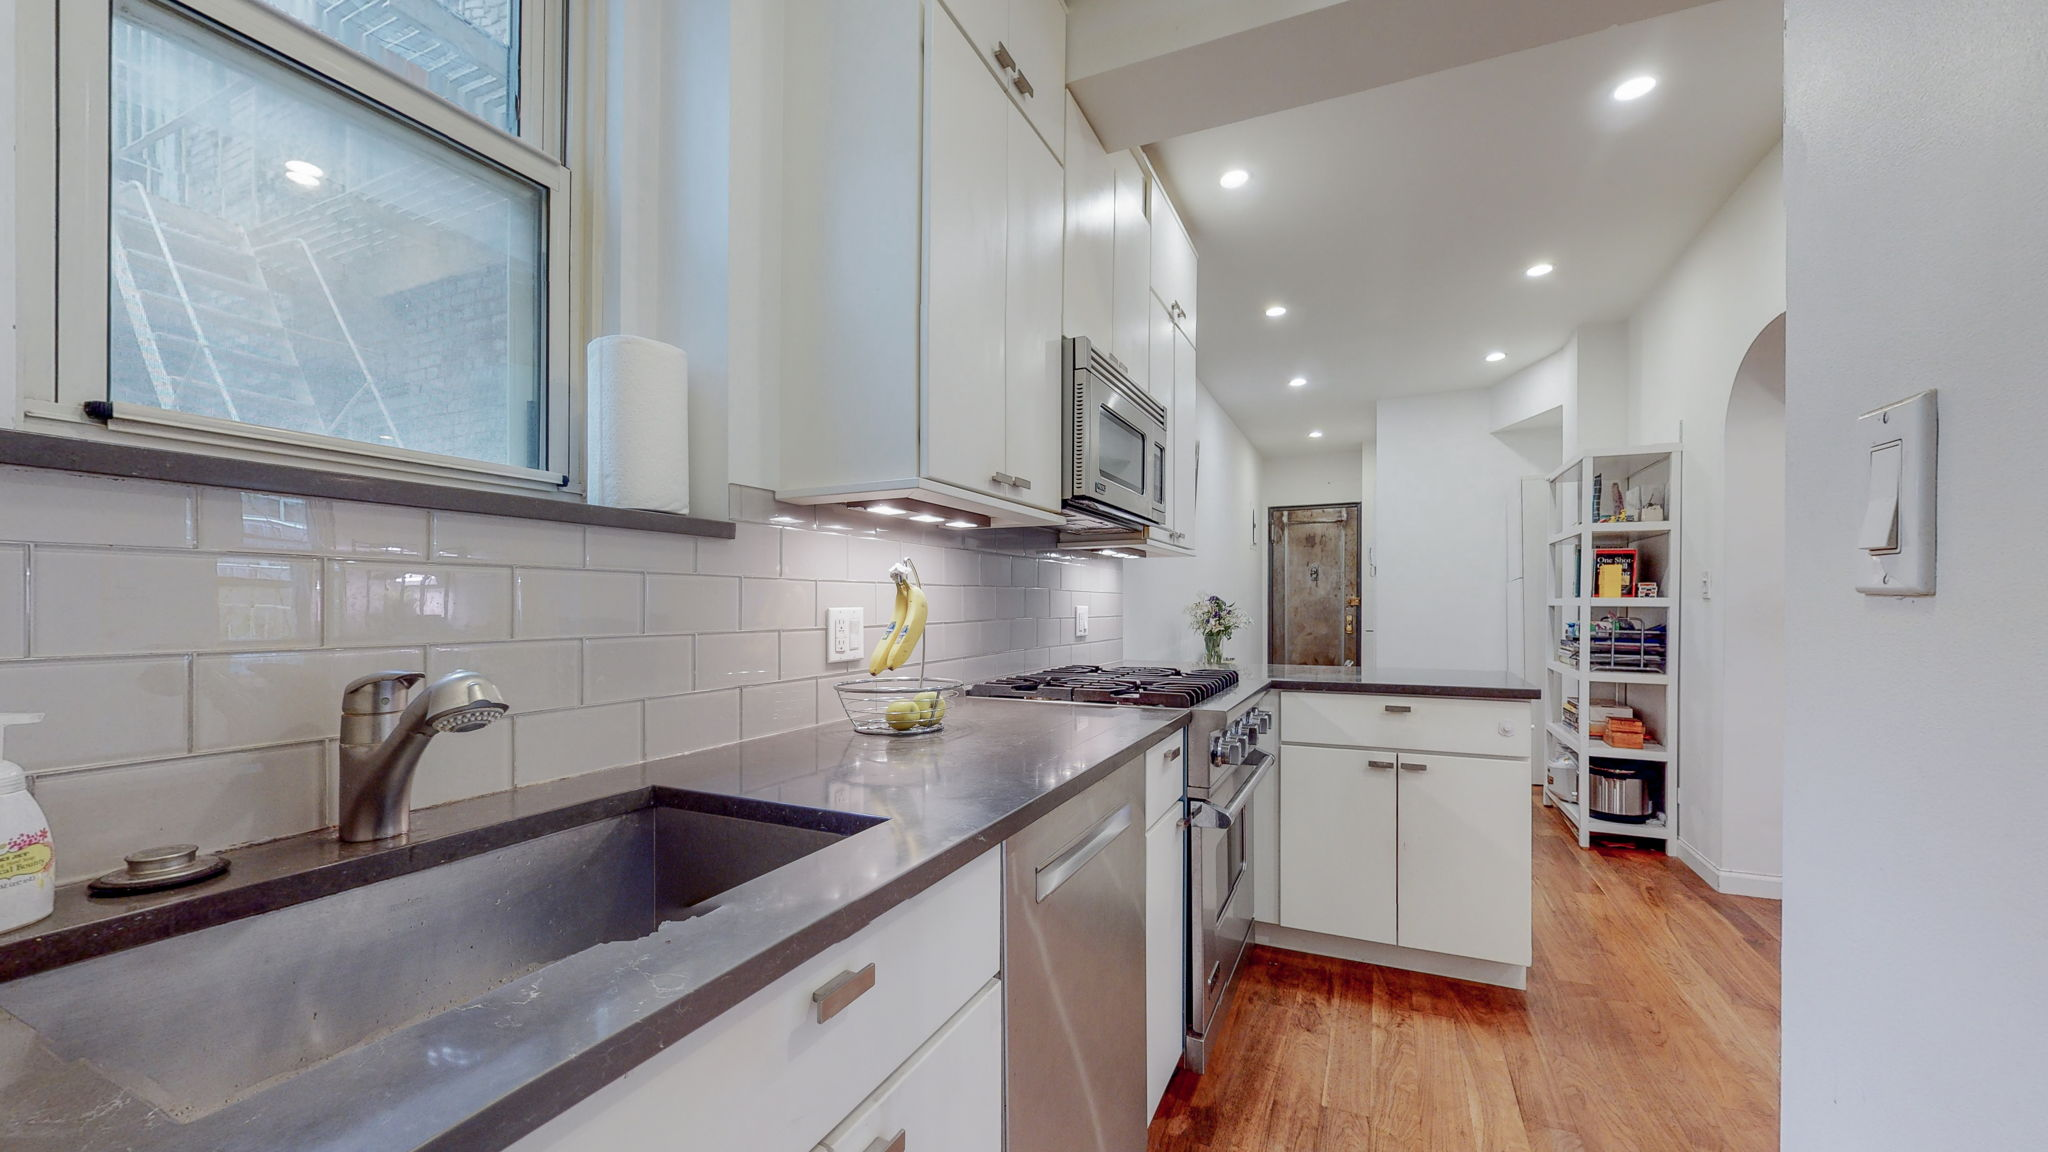 210 West 19th, New York, New York, New York, United States 10011, 1 Bedroom Bedrooms, ,1 BathroomBathrooms,Condo,Rented,West 19th,1146